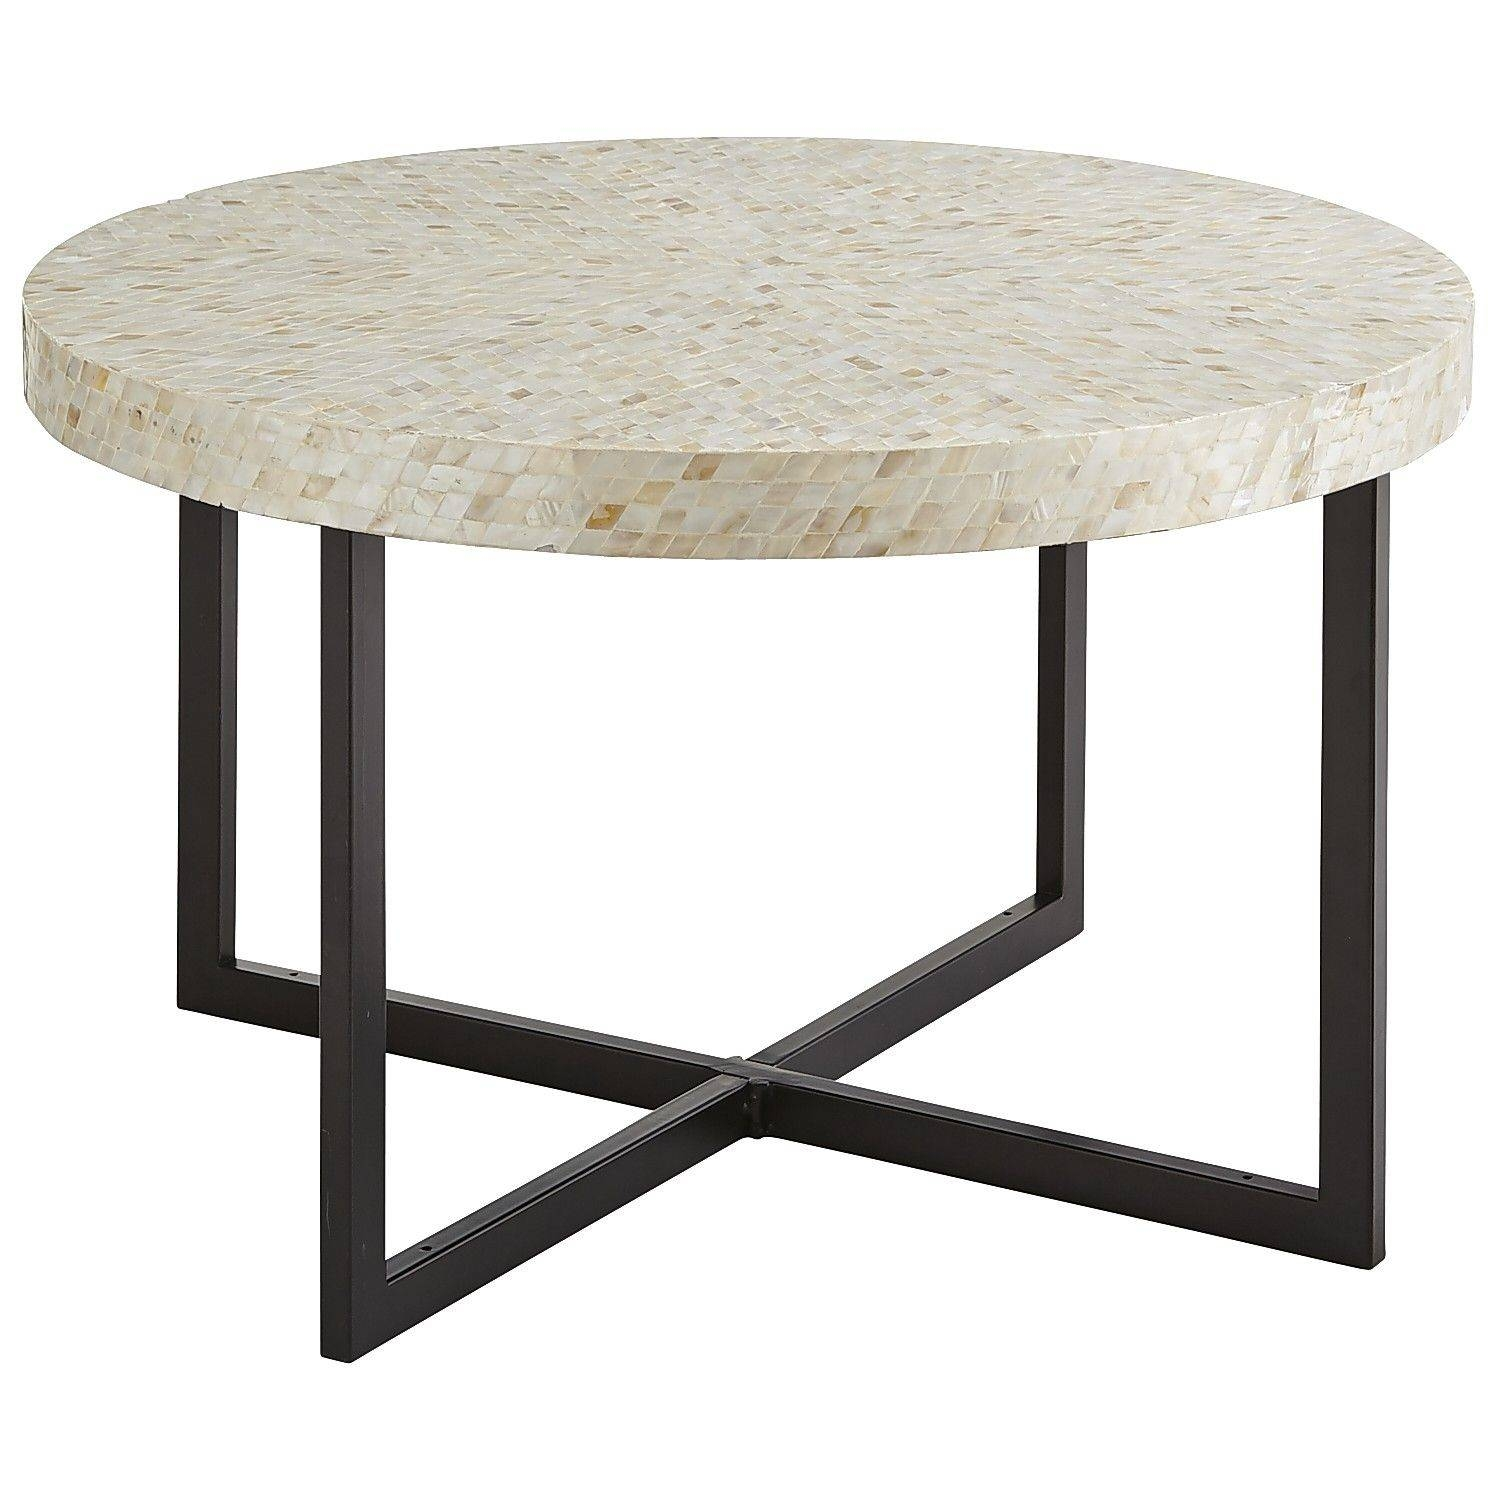 15 Best Collection of Pier e Sofa Tables